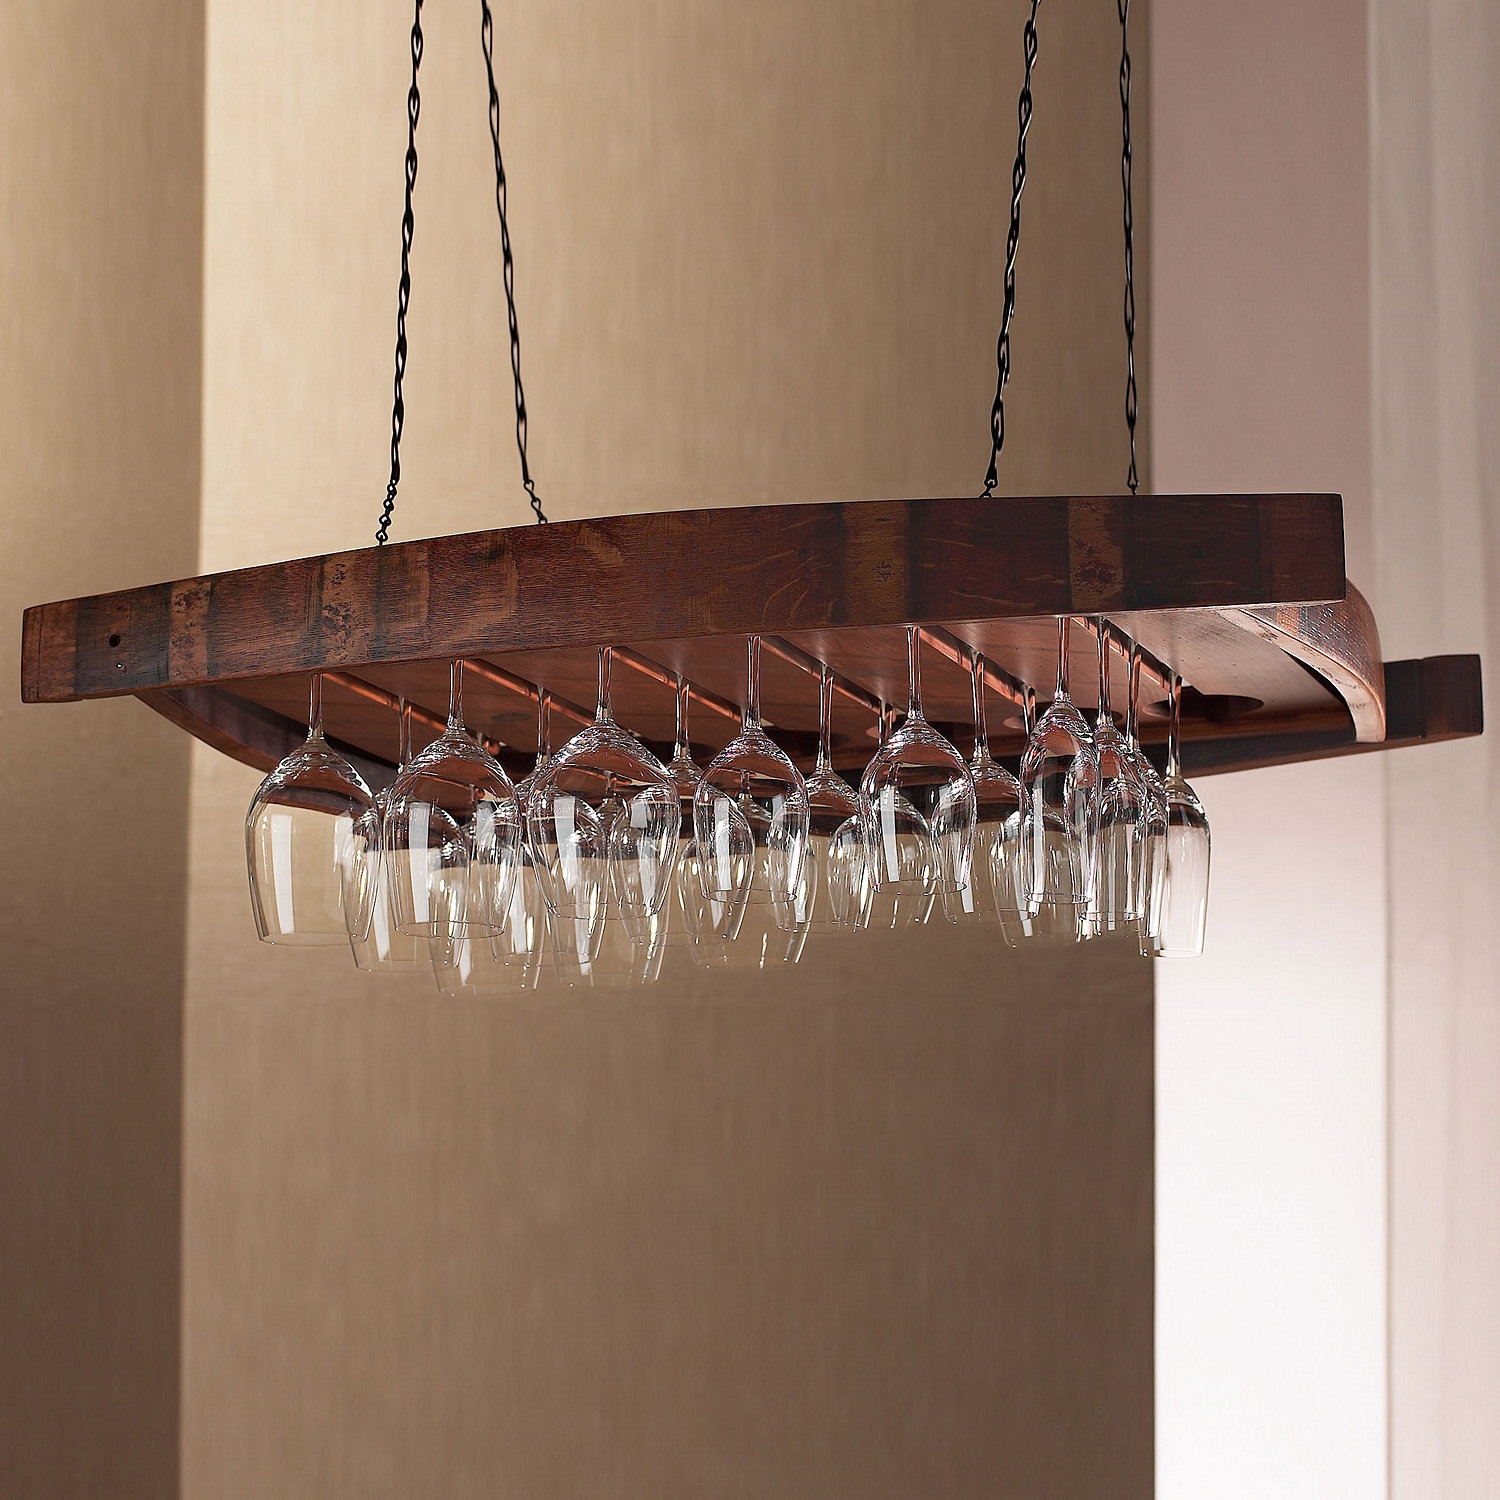 Vintage Oak Hanging Wine Glass Rack Wine Enthusiast In Hanging Glass Shelves From Ceiling (Image 15 of 15)